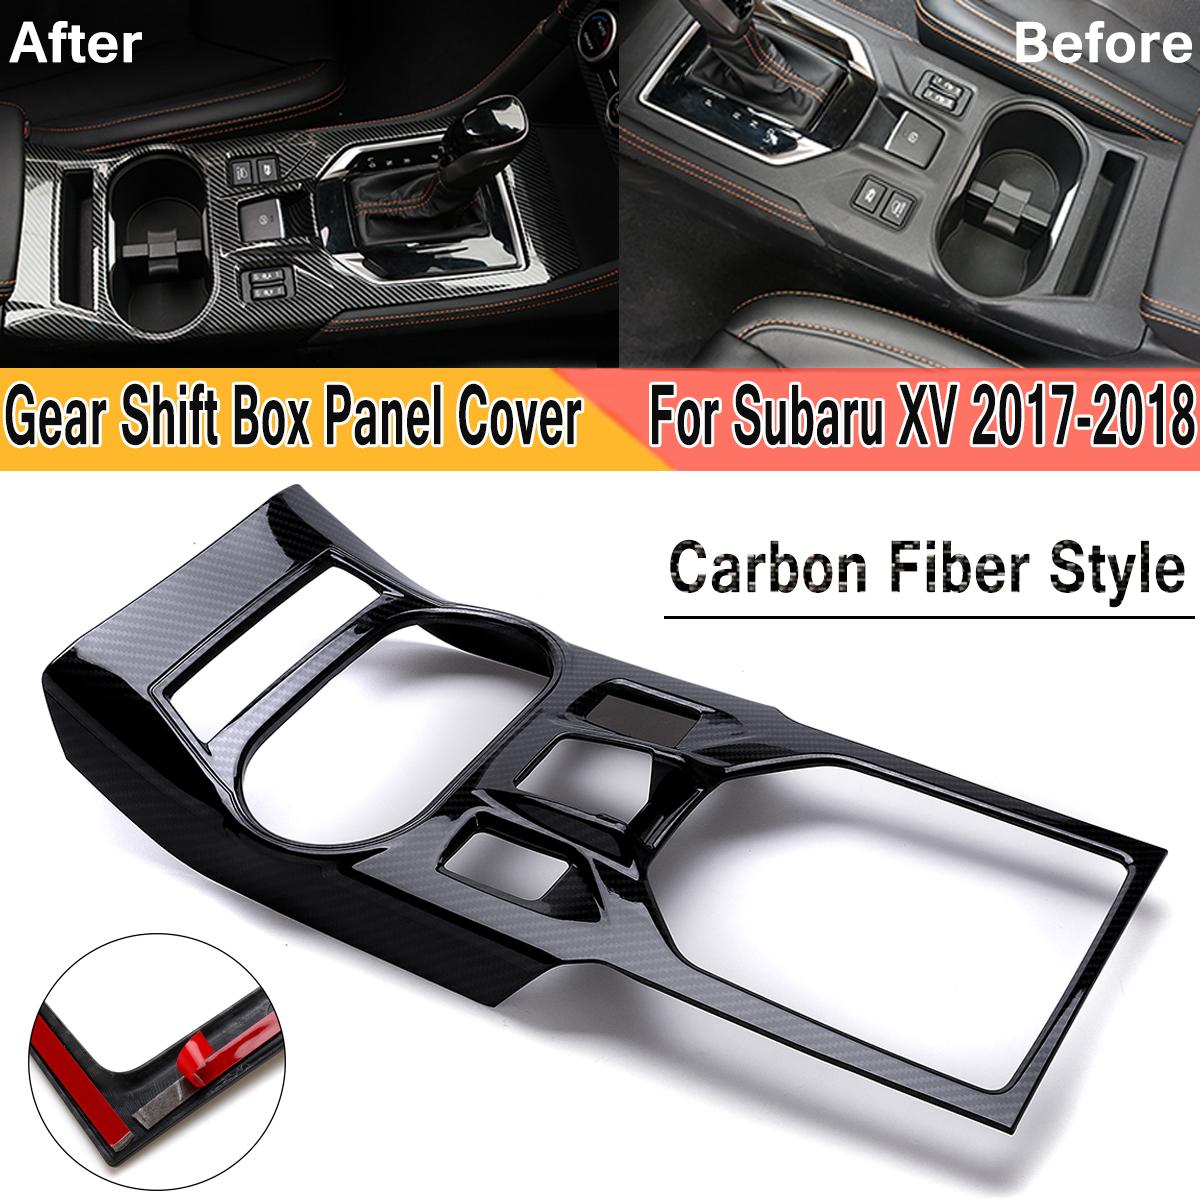 Carbon Fiber Style ABS Interior Gear Shift Box Panel Overlay Cover Trim For Subaru XV 2017-2018 Interior Dashboard Accessories interior for chevrolet camaro 2016 2017 abs carbon fiber style transmission shift gear panel cover trim 1 piece page 6